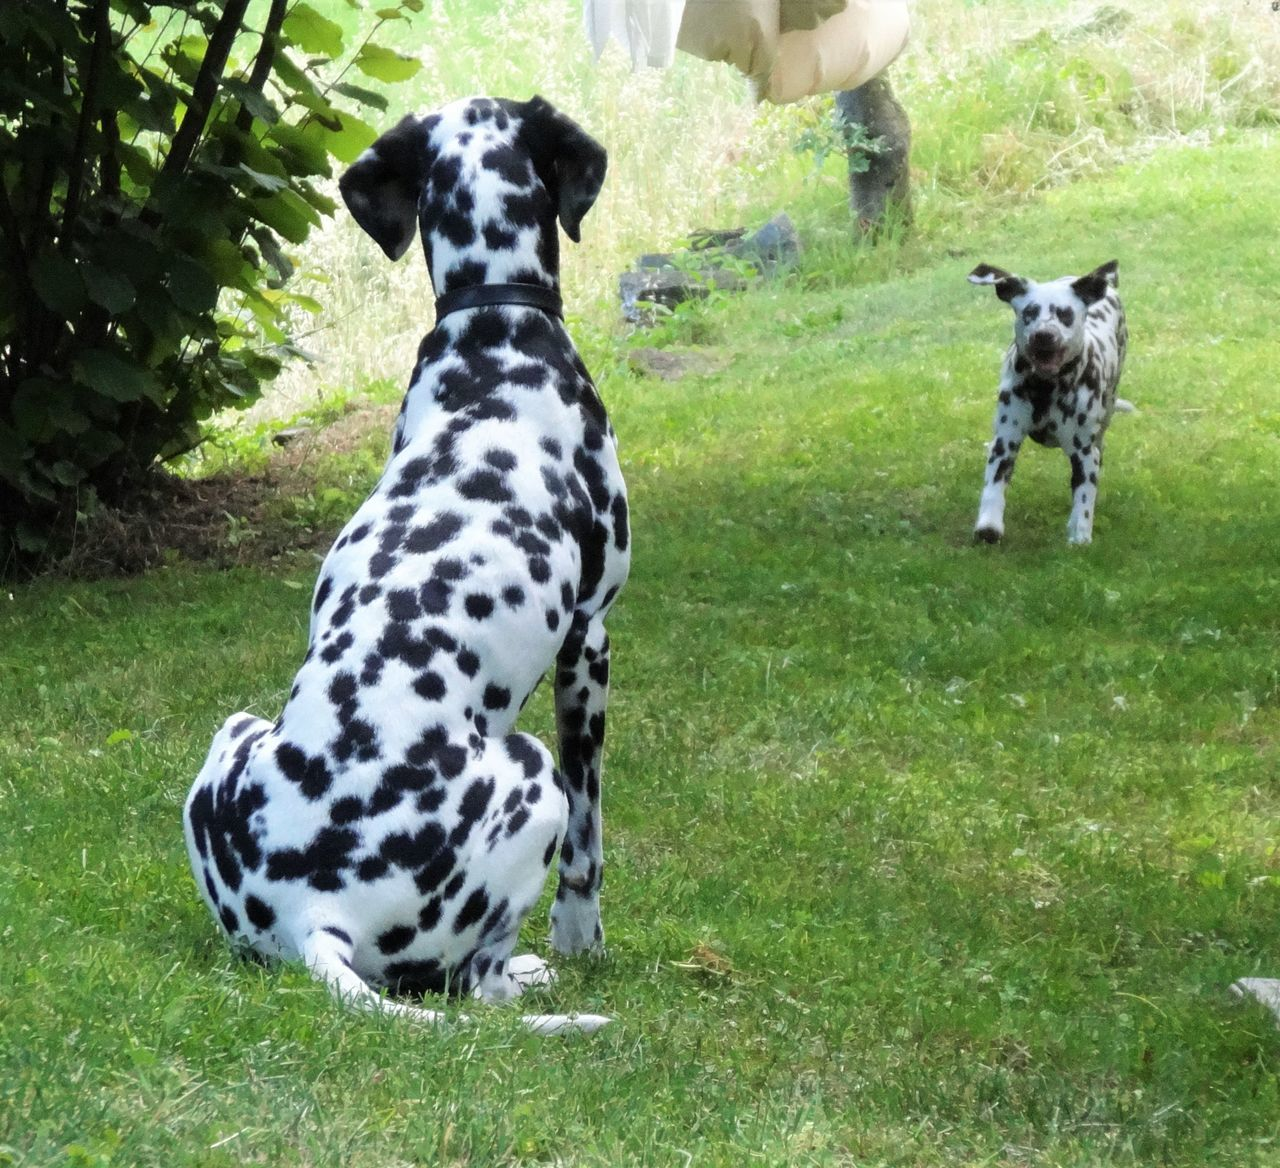 Animal Themes Dalmatian Dalmatian Dog Dalmatian Puppy Dalmatians Dalmatiansofeyem Dalmatiansofinstagram Dog Dogs Domestic Animals No People Outdoors Pets Pup Puppy Running Dog Sitting Dog Spotted Spotted Dogs